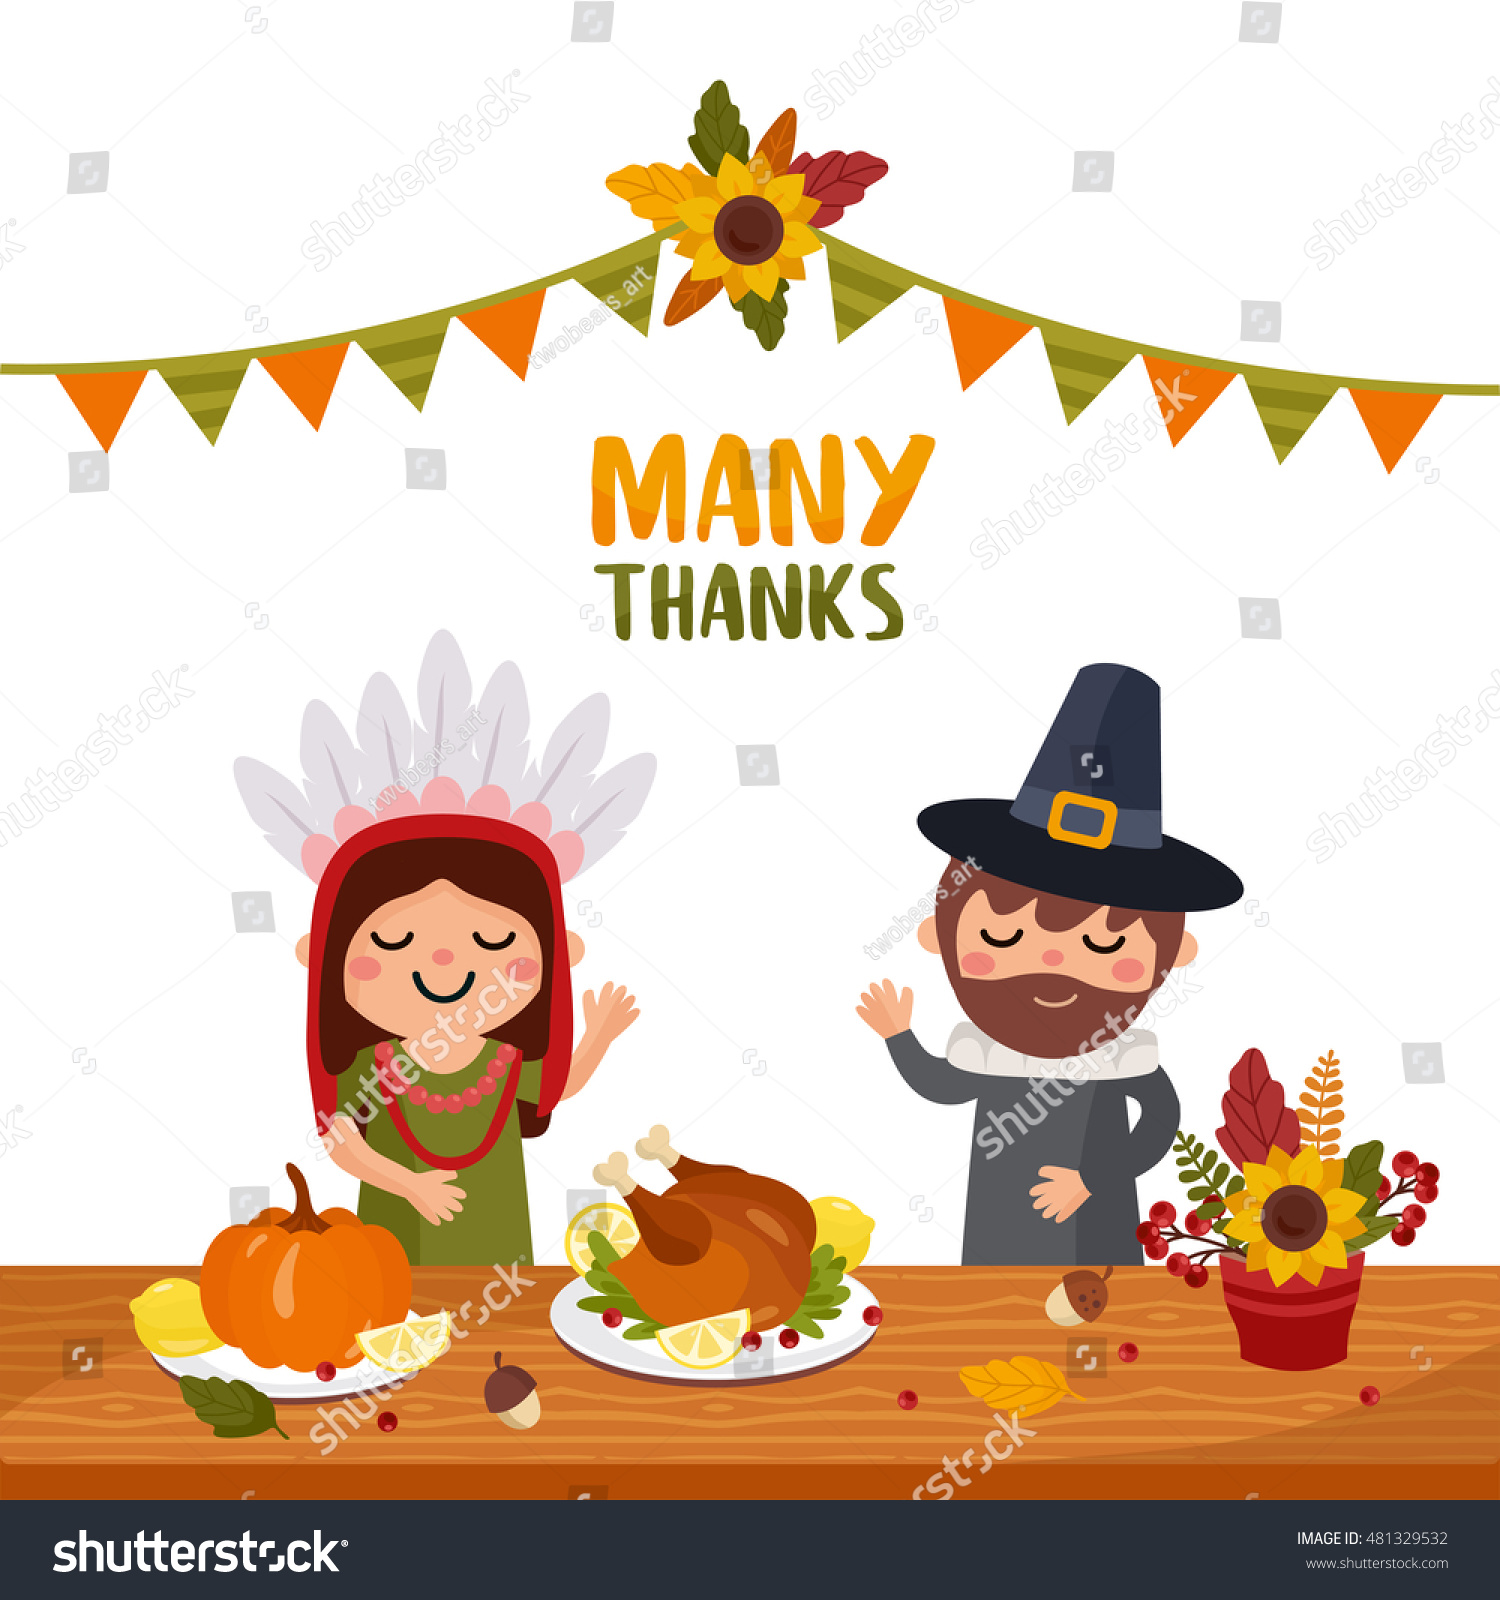 Happy thanksgiving day greeting card feast stock vector 481329532 happy thanksgiving day greeting card with feast table people characters and holiday food kristyandbryce Choice Image